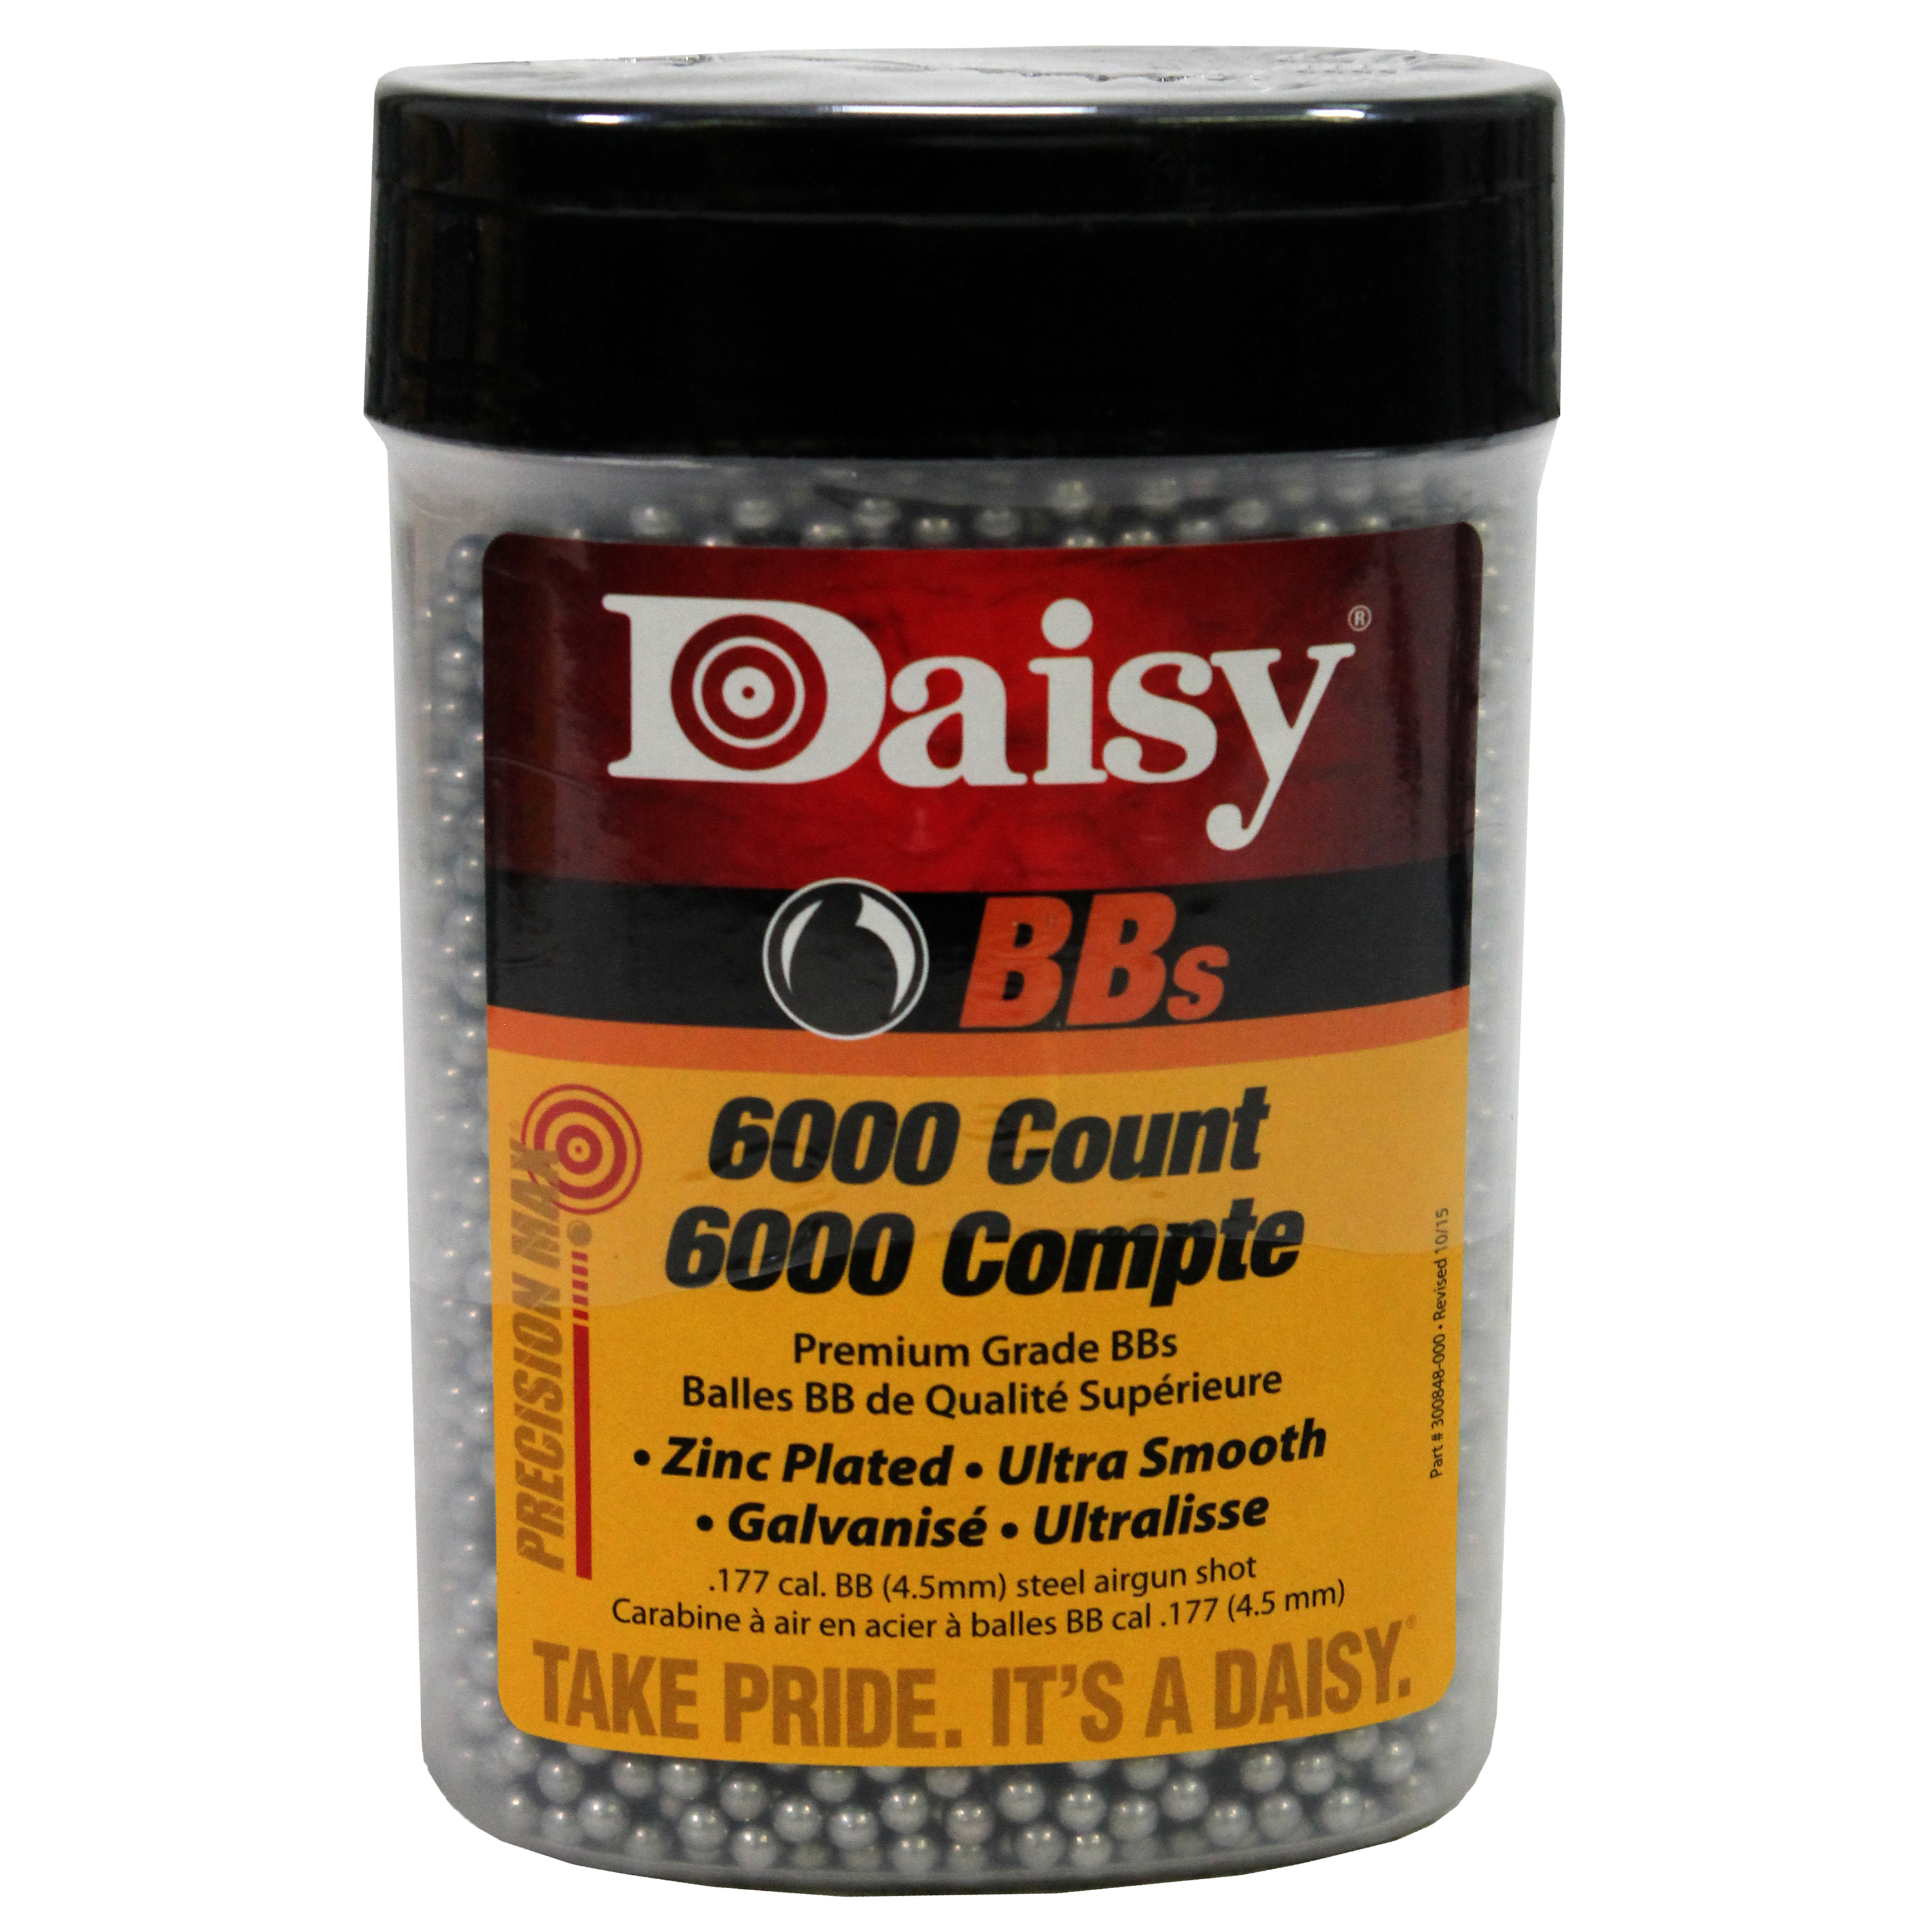 DAISY PRECISIONMAX BBS .177 BB ZINC-PLATED STEEL 00